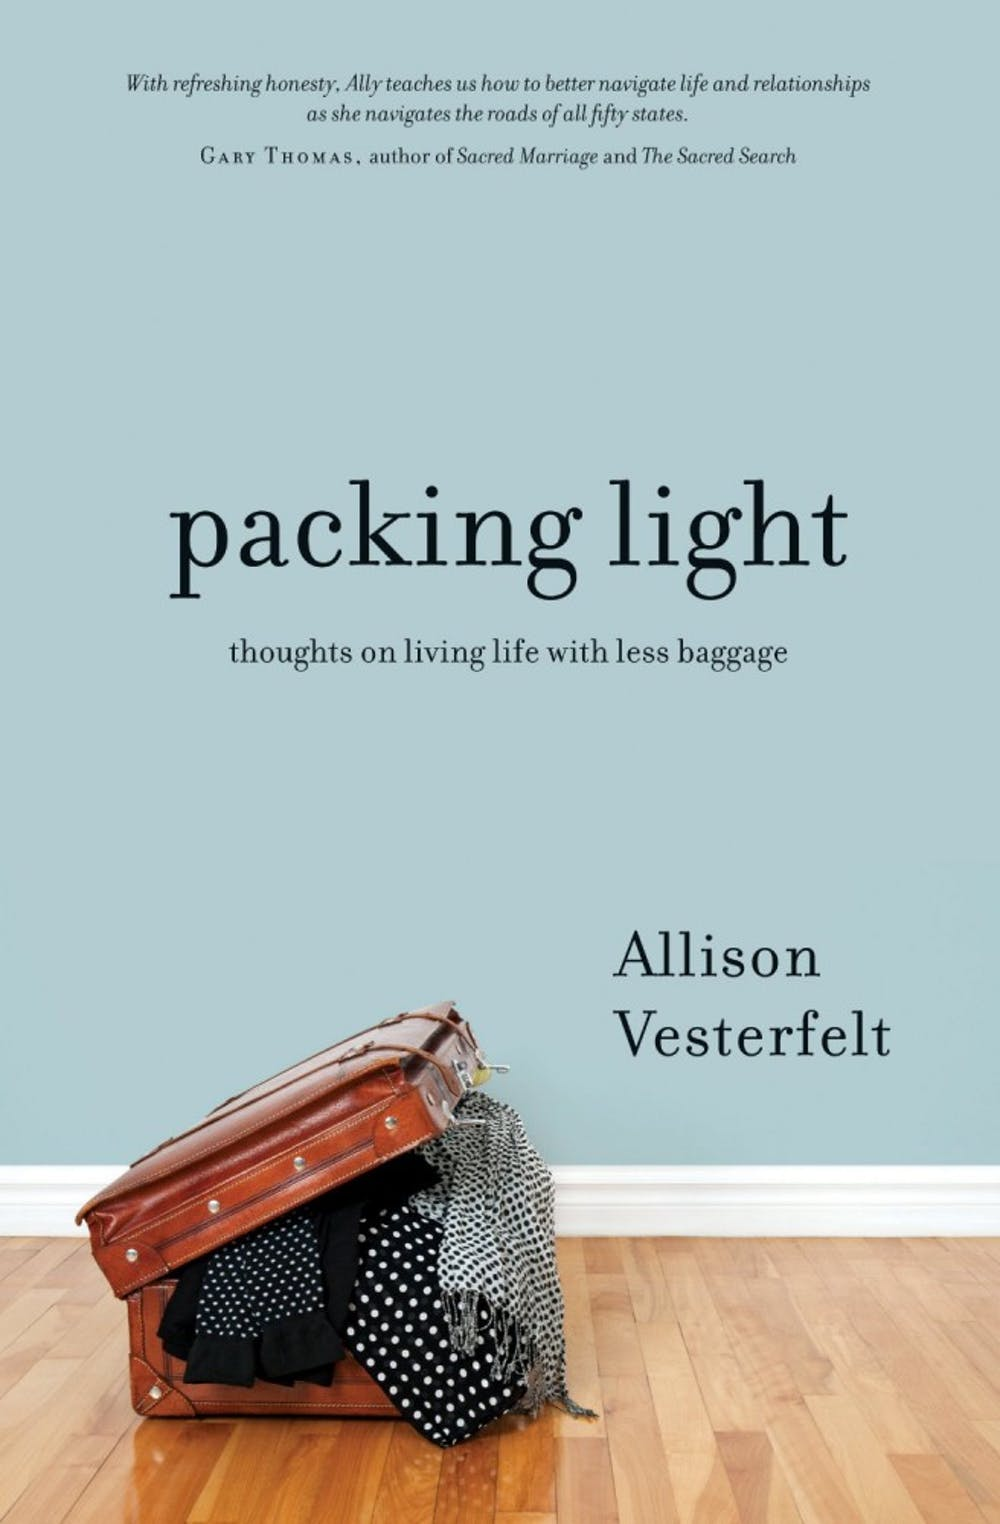 Packing Light by Allison Vesterfelt - Book Review